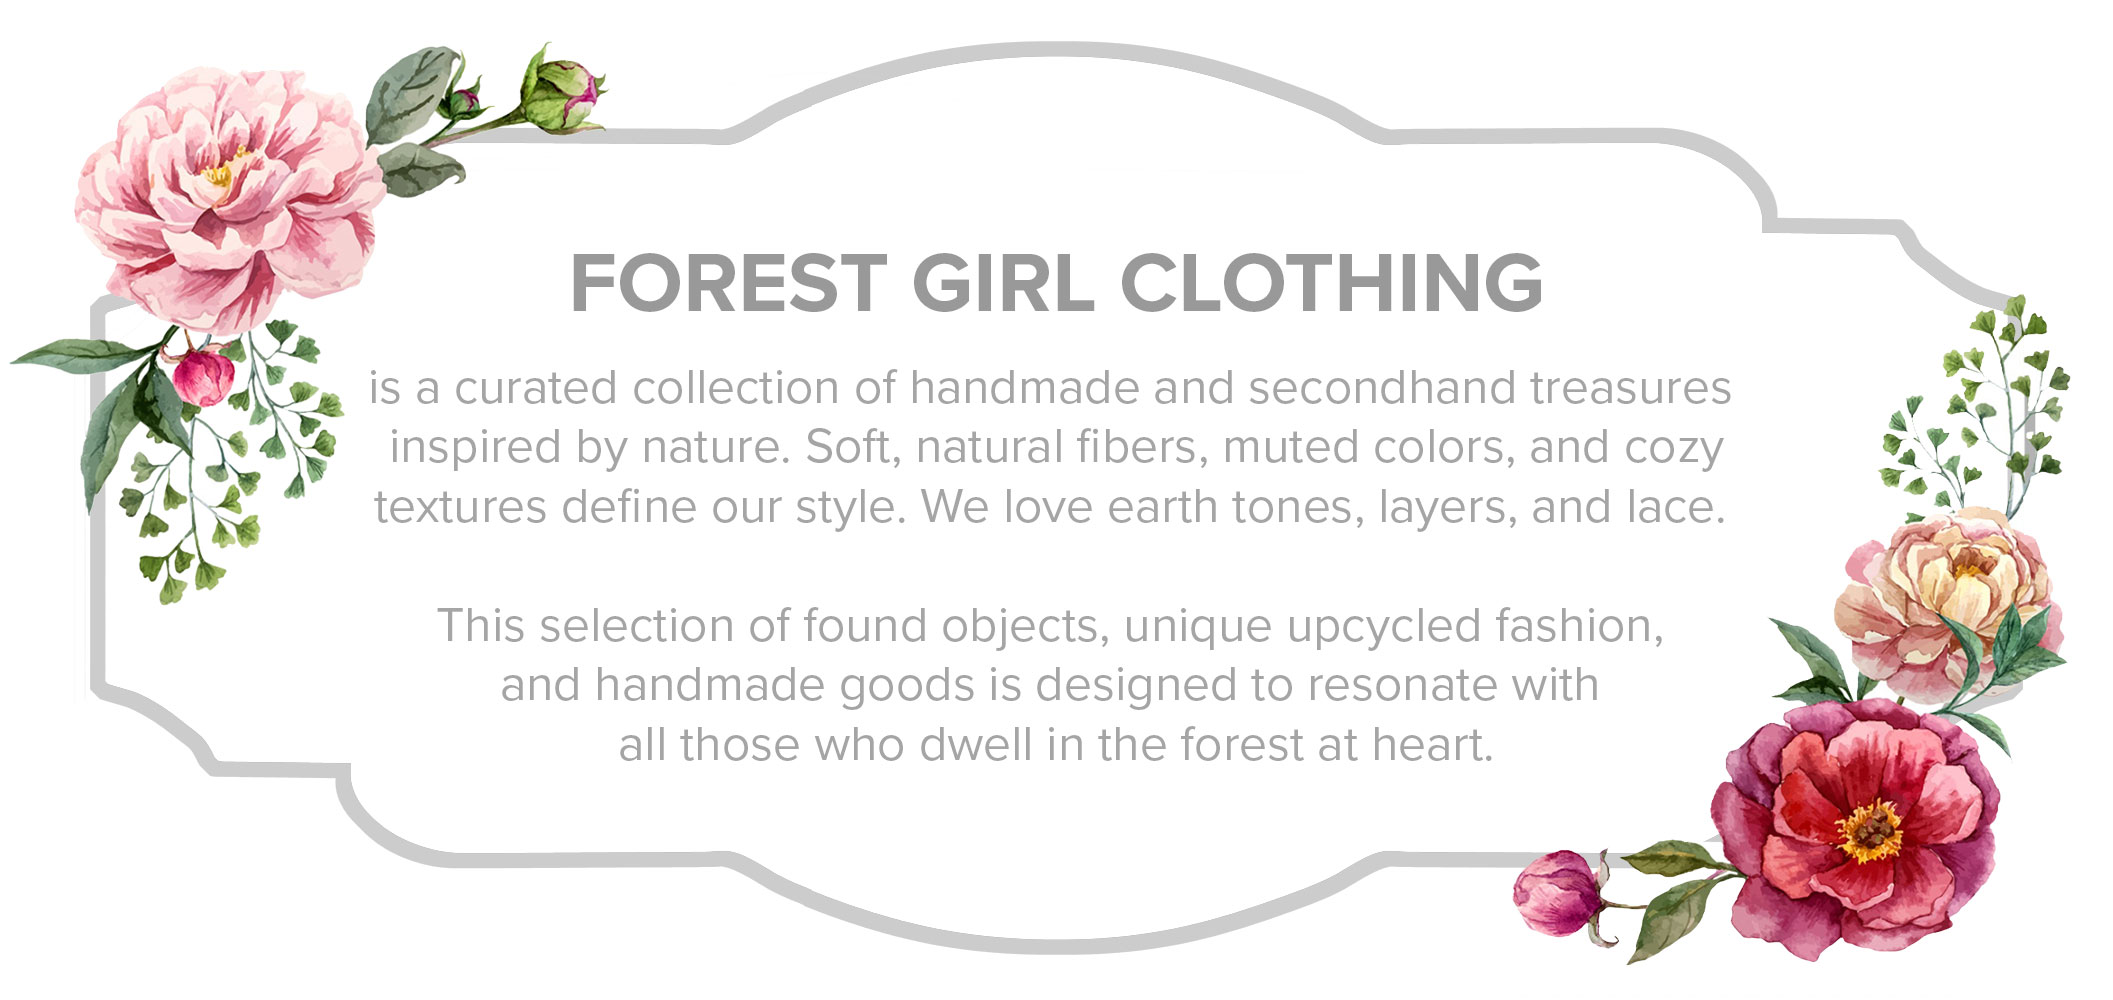 forest-girl-definition.jpg